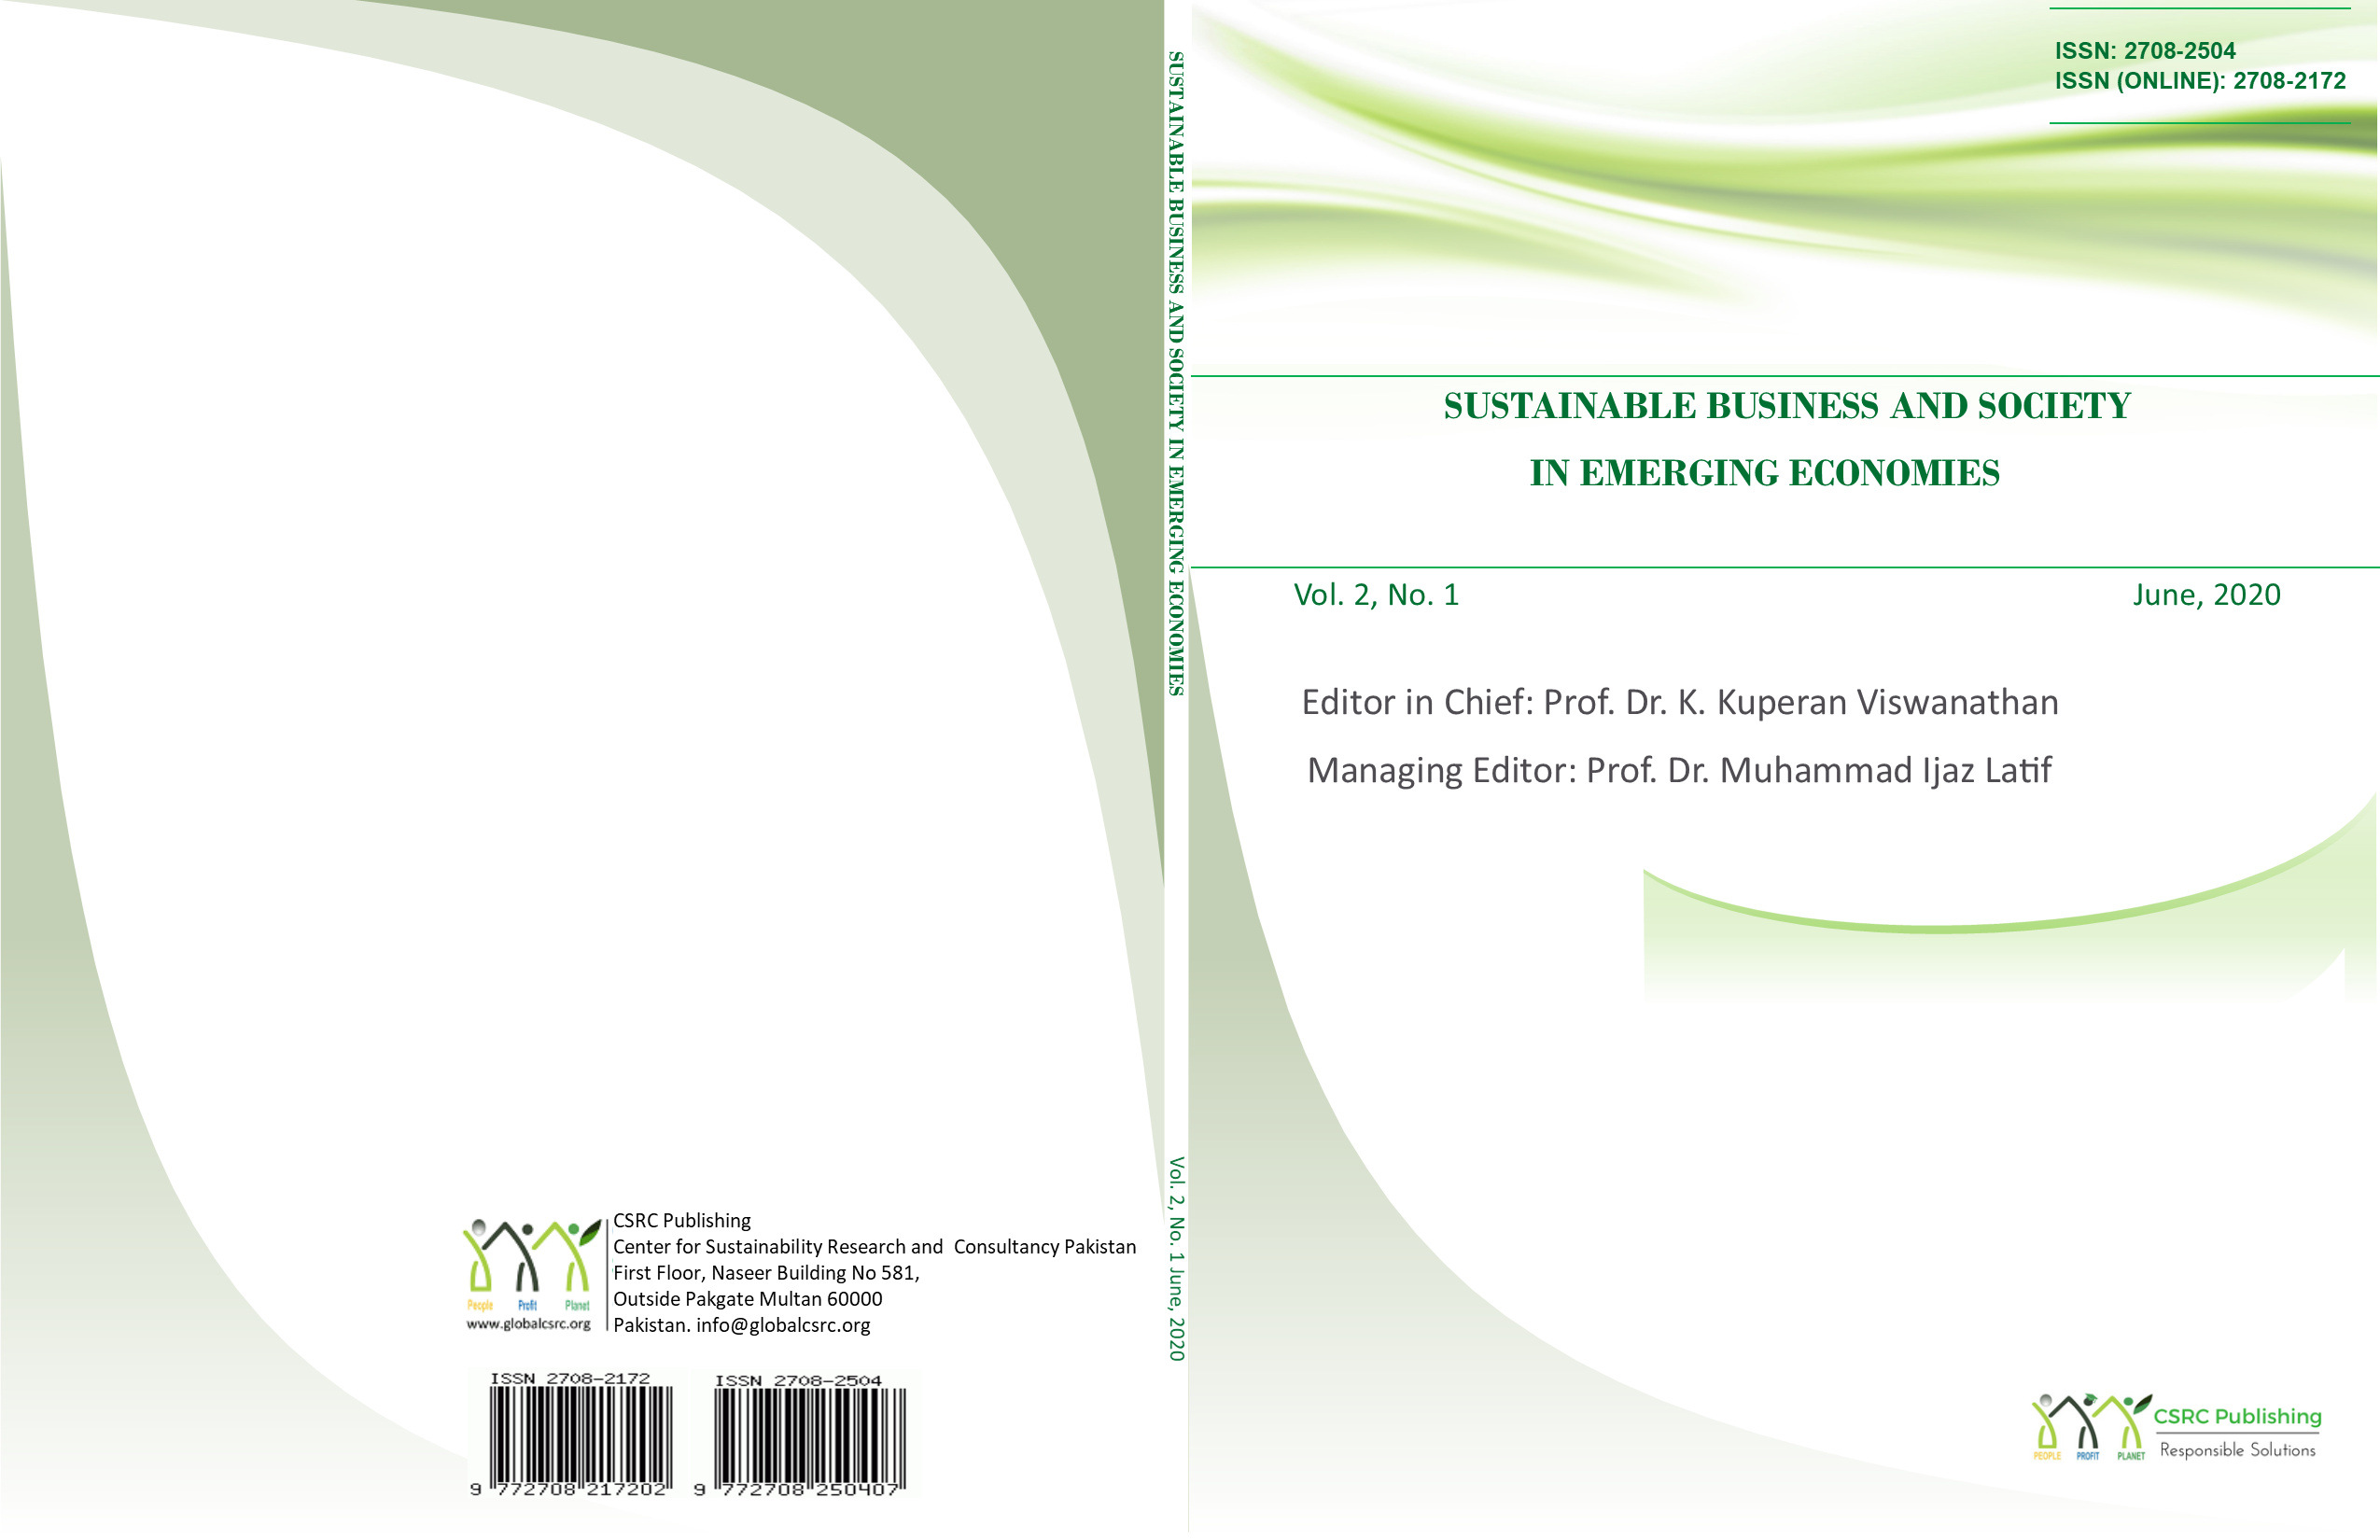 Sustainable Business and Society in Emerging Economies